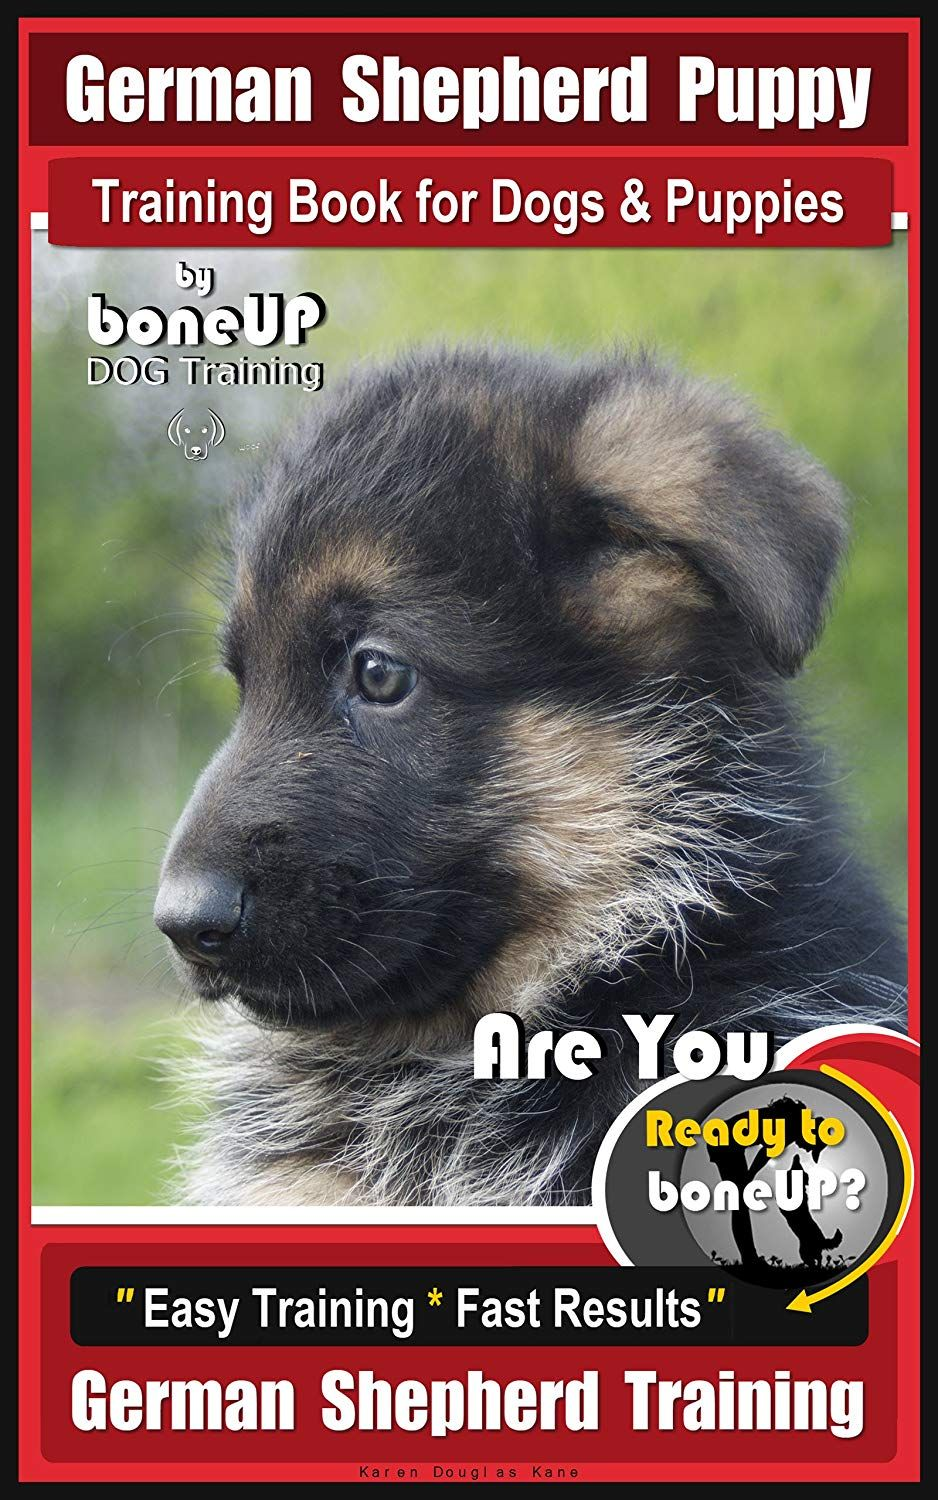 German Shepherd Puppy Training Book For Dogs Puppies By Boneup